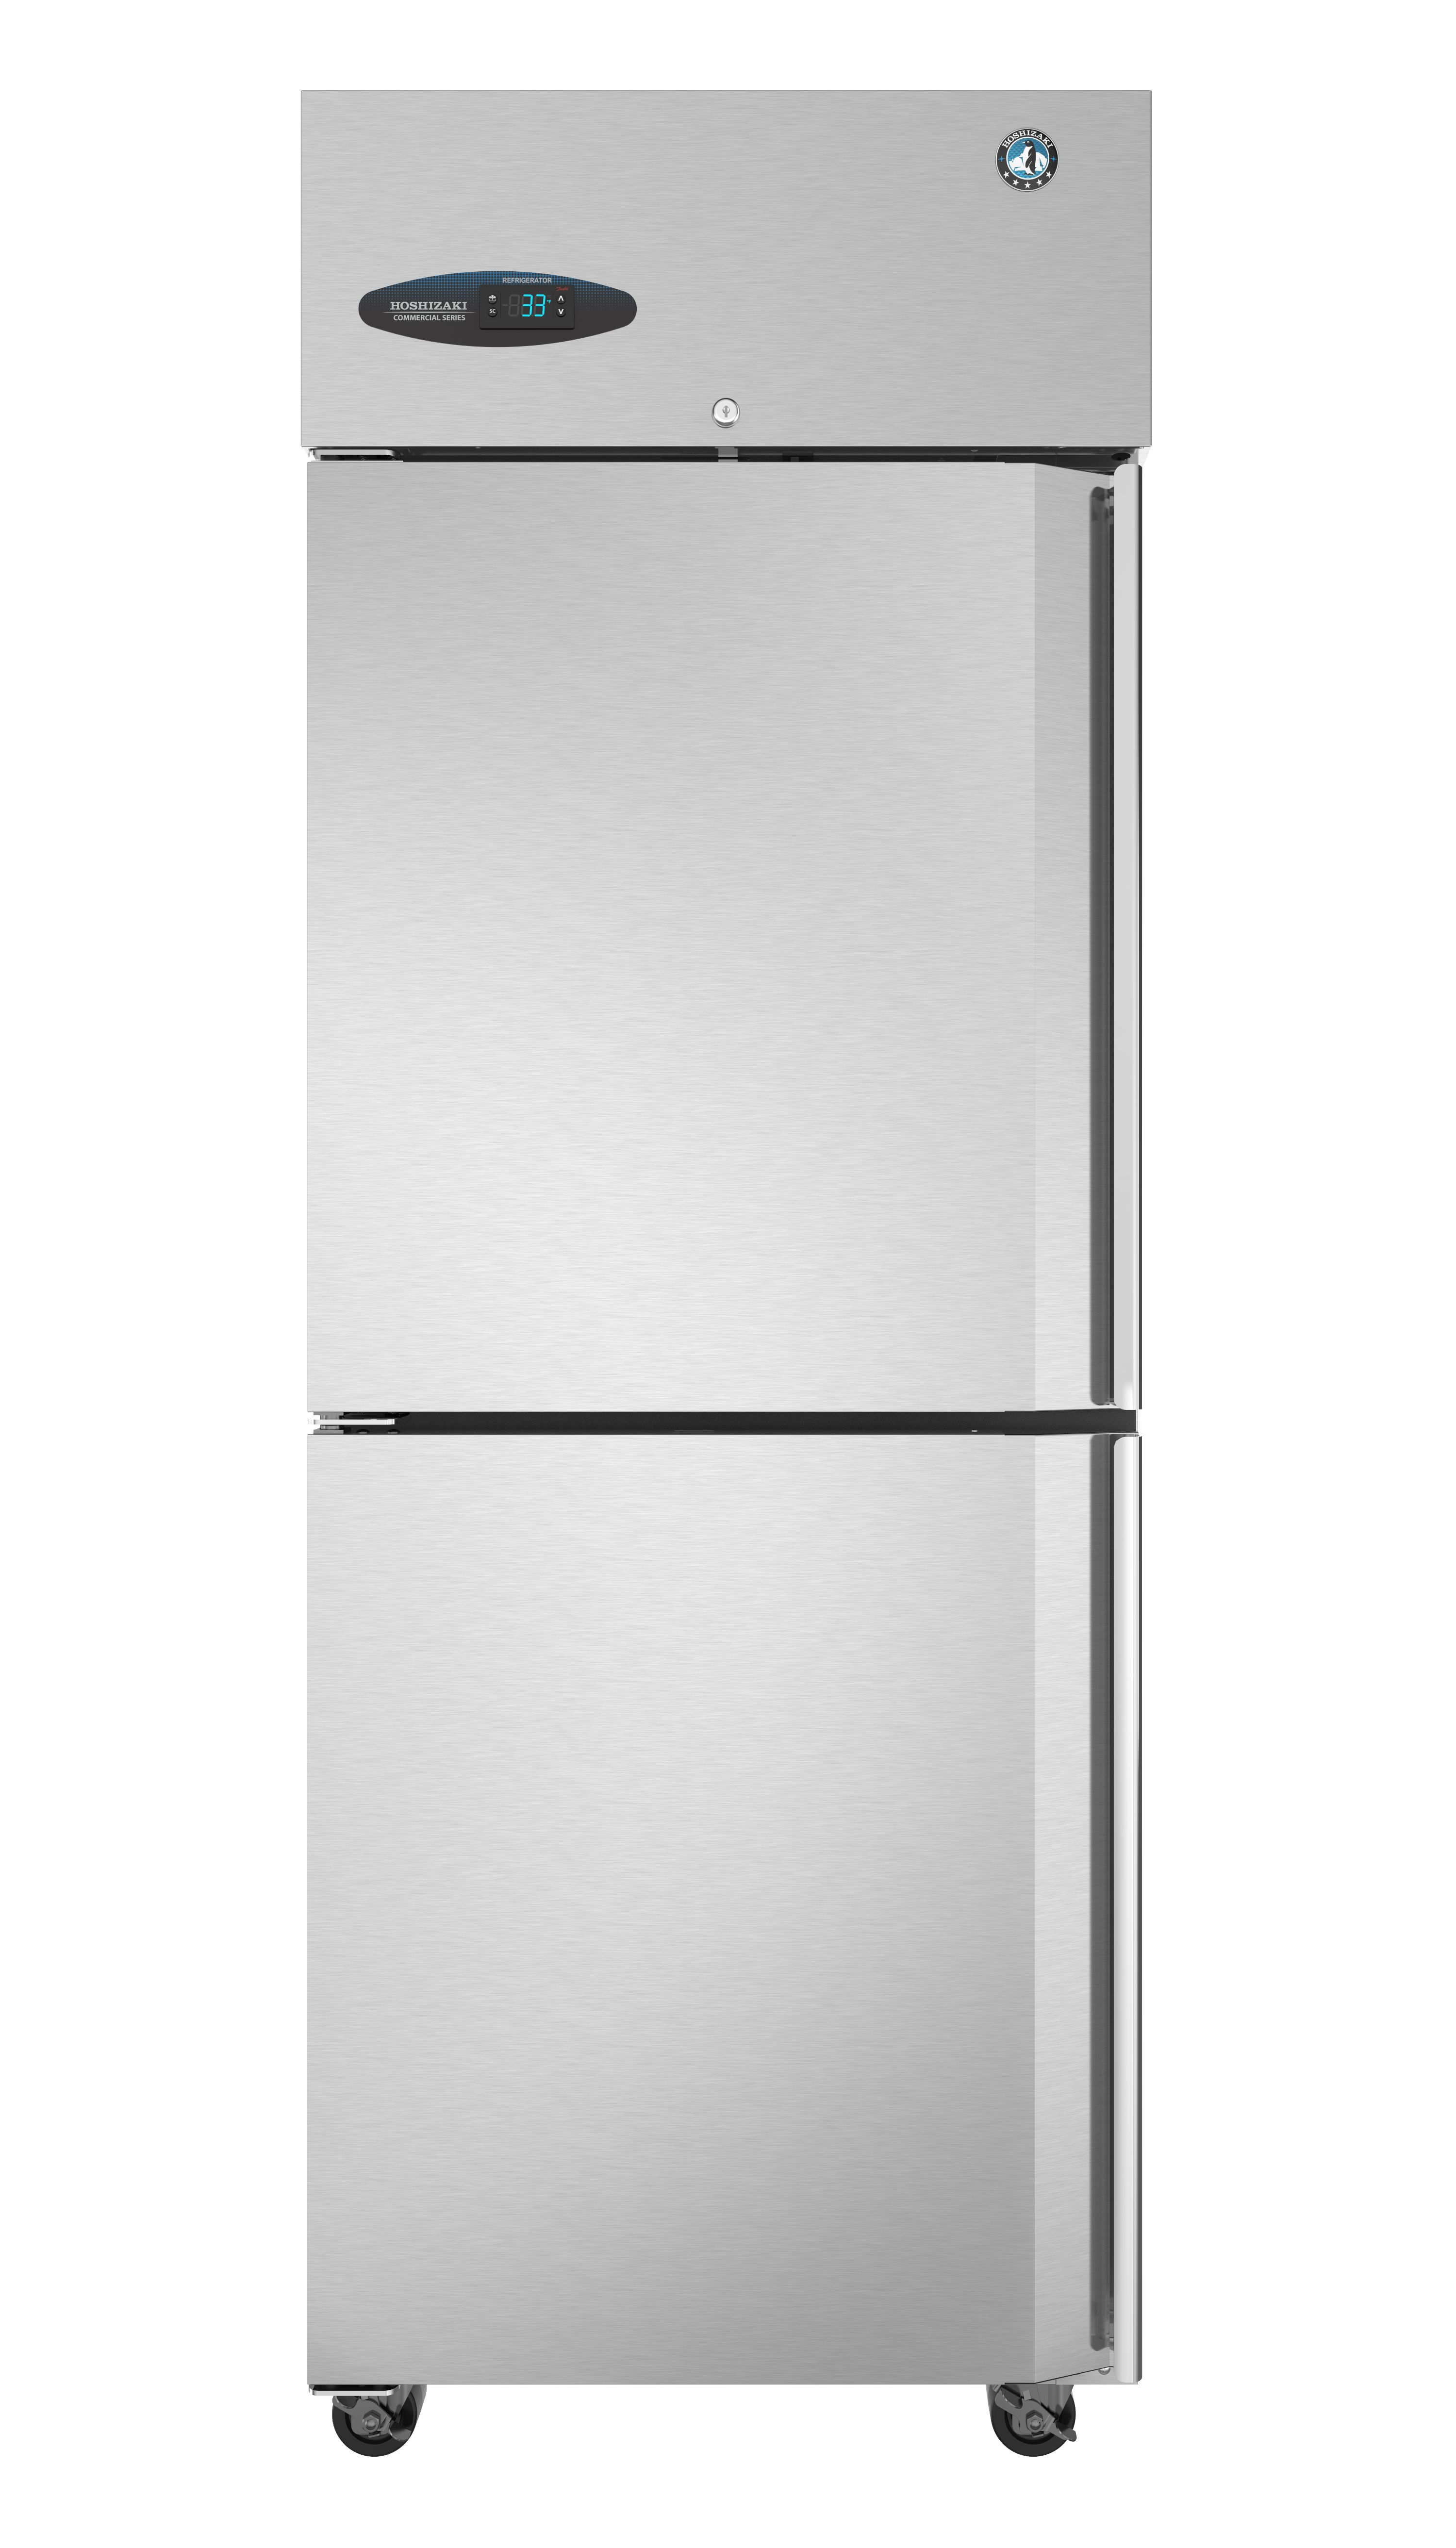 Cf1s Hsl Freezer Single Section Upright Half Stainless Doors With Lock Commercial Refrigerators Commercial Freezer Wire Shelving